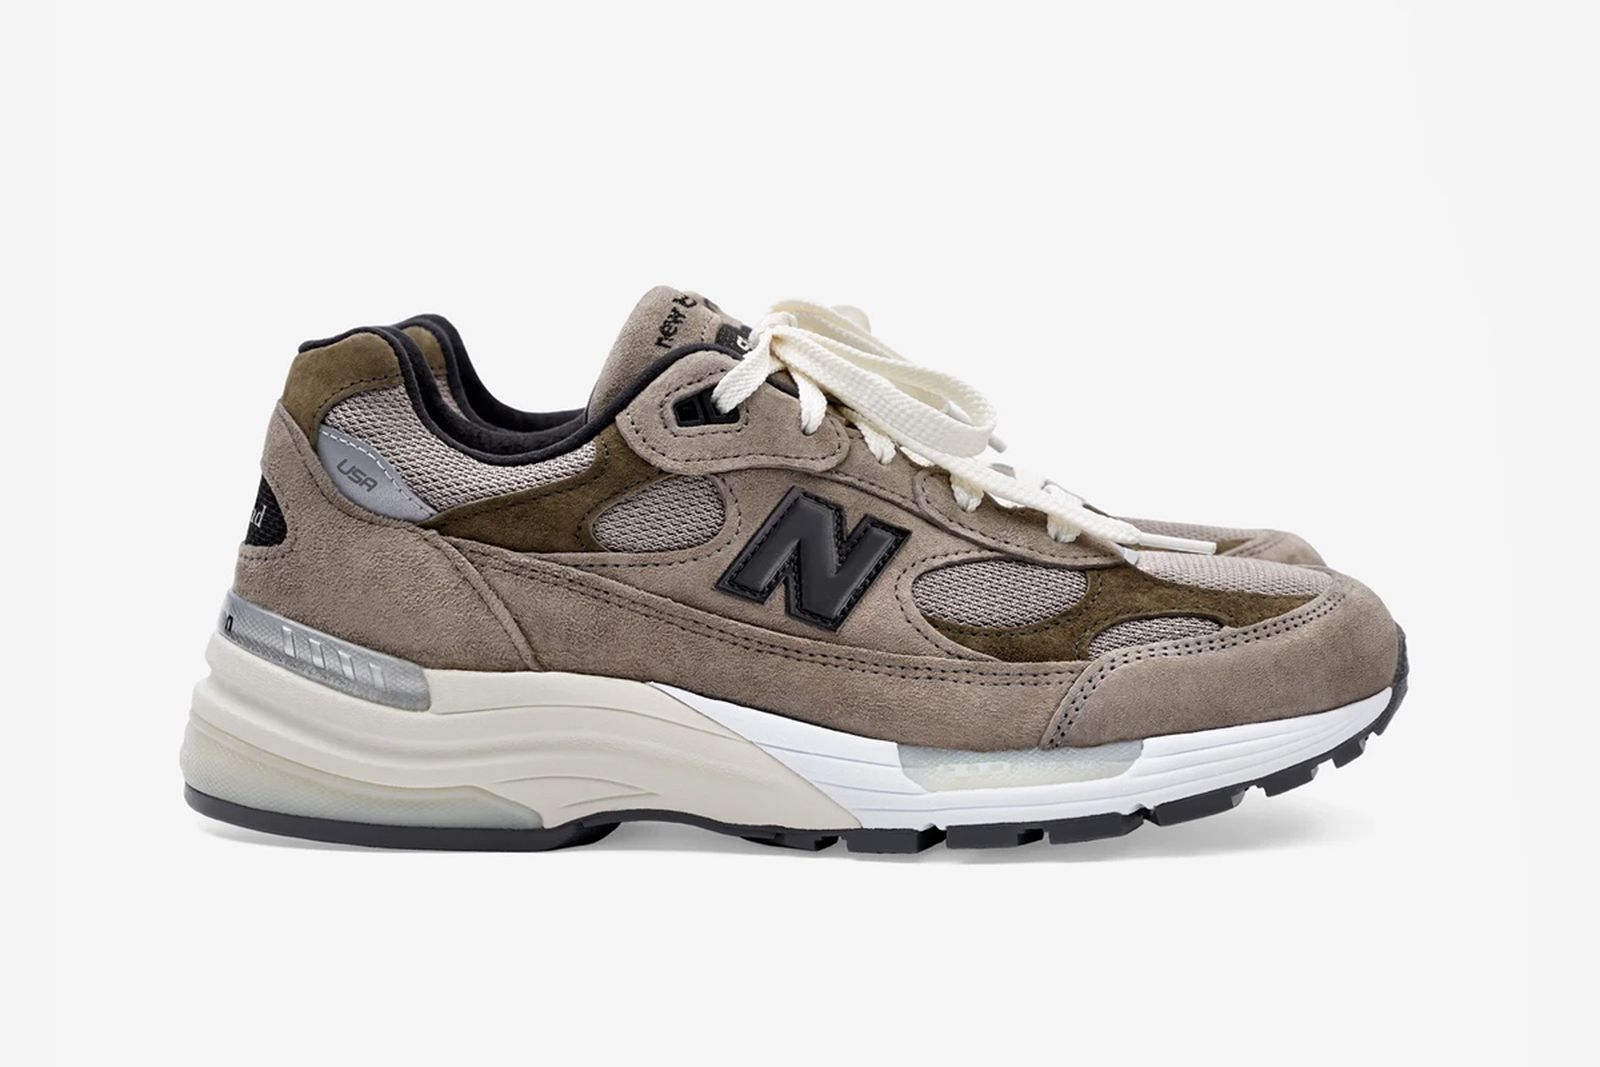 jjjjound-new-balance-992-release-date-price-03